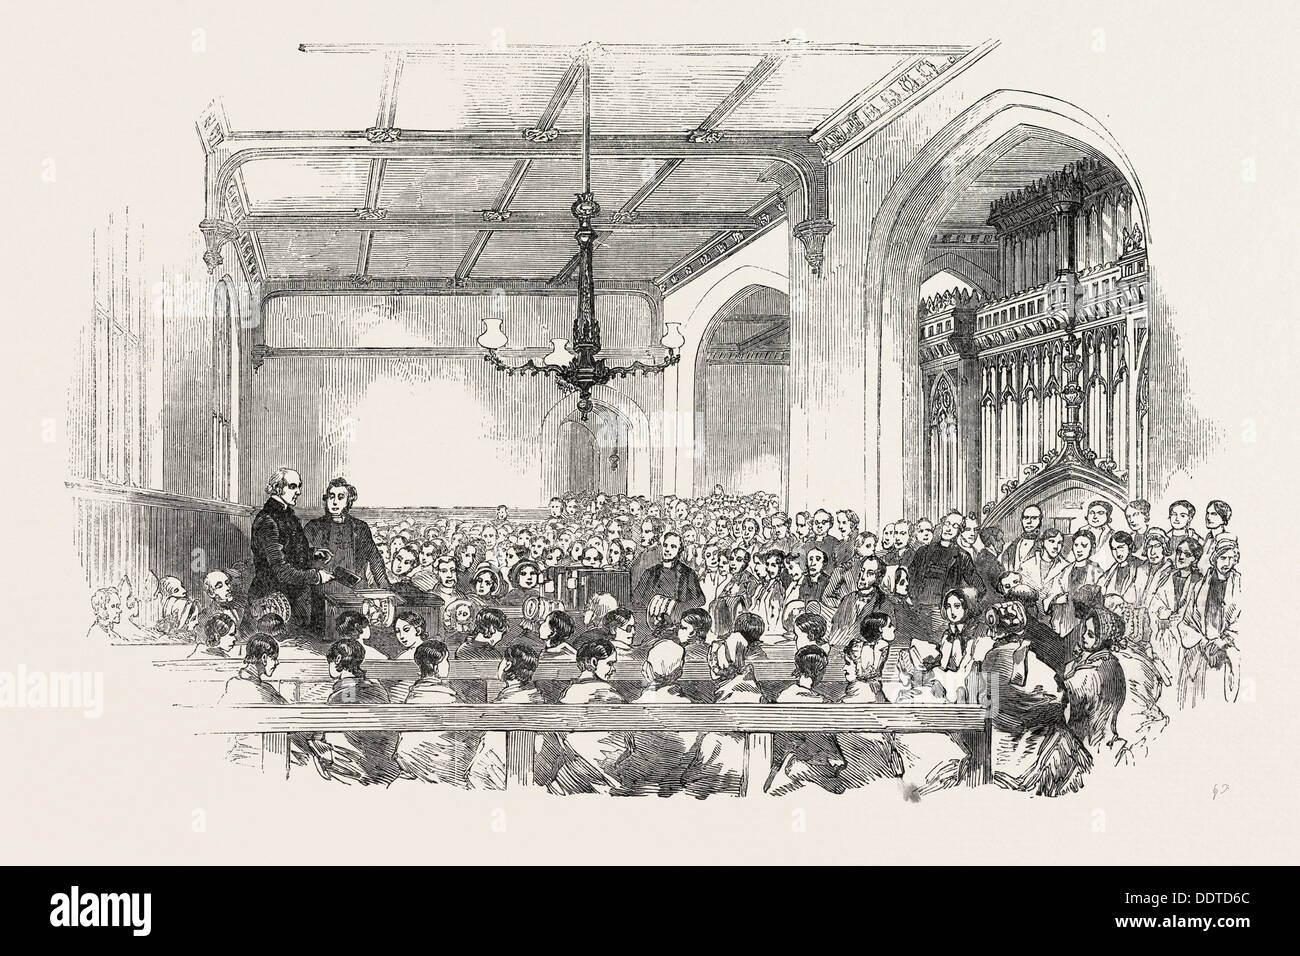 SCHOOL FOR THE INDIGENT BLIND, EXAMINATION OF THE PUPILS, 1851 engraving - Stock Image